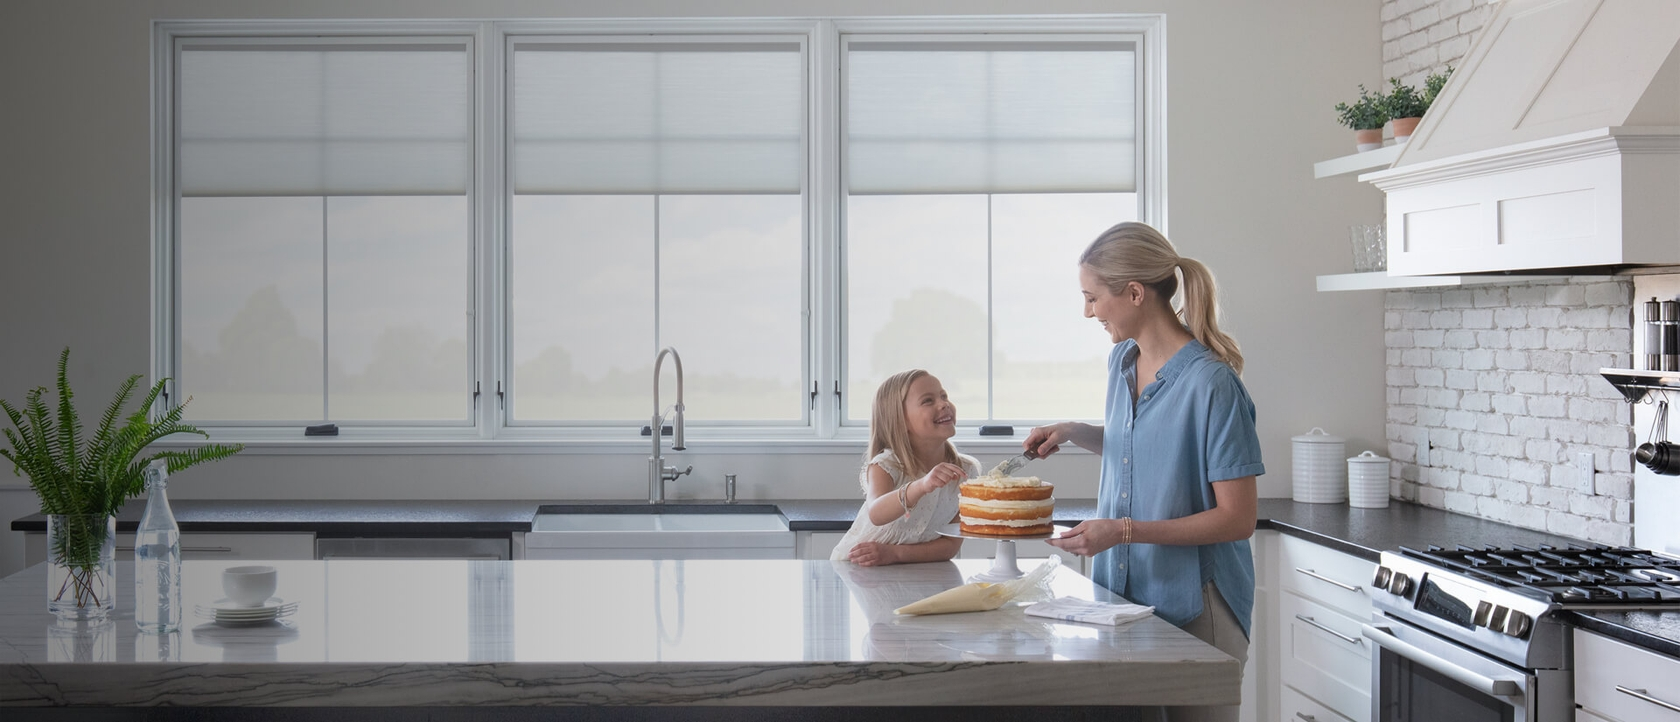 mother and daughter baking kitchen 3 large windows integrated blinds white trim Lifestyle Series